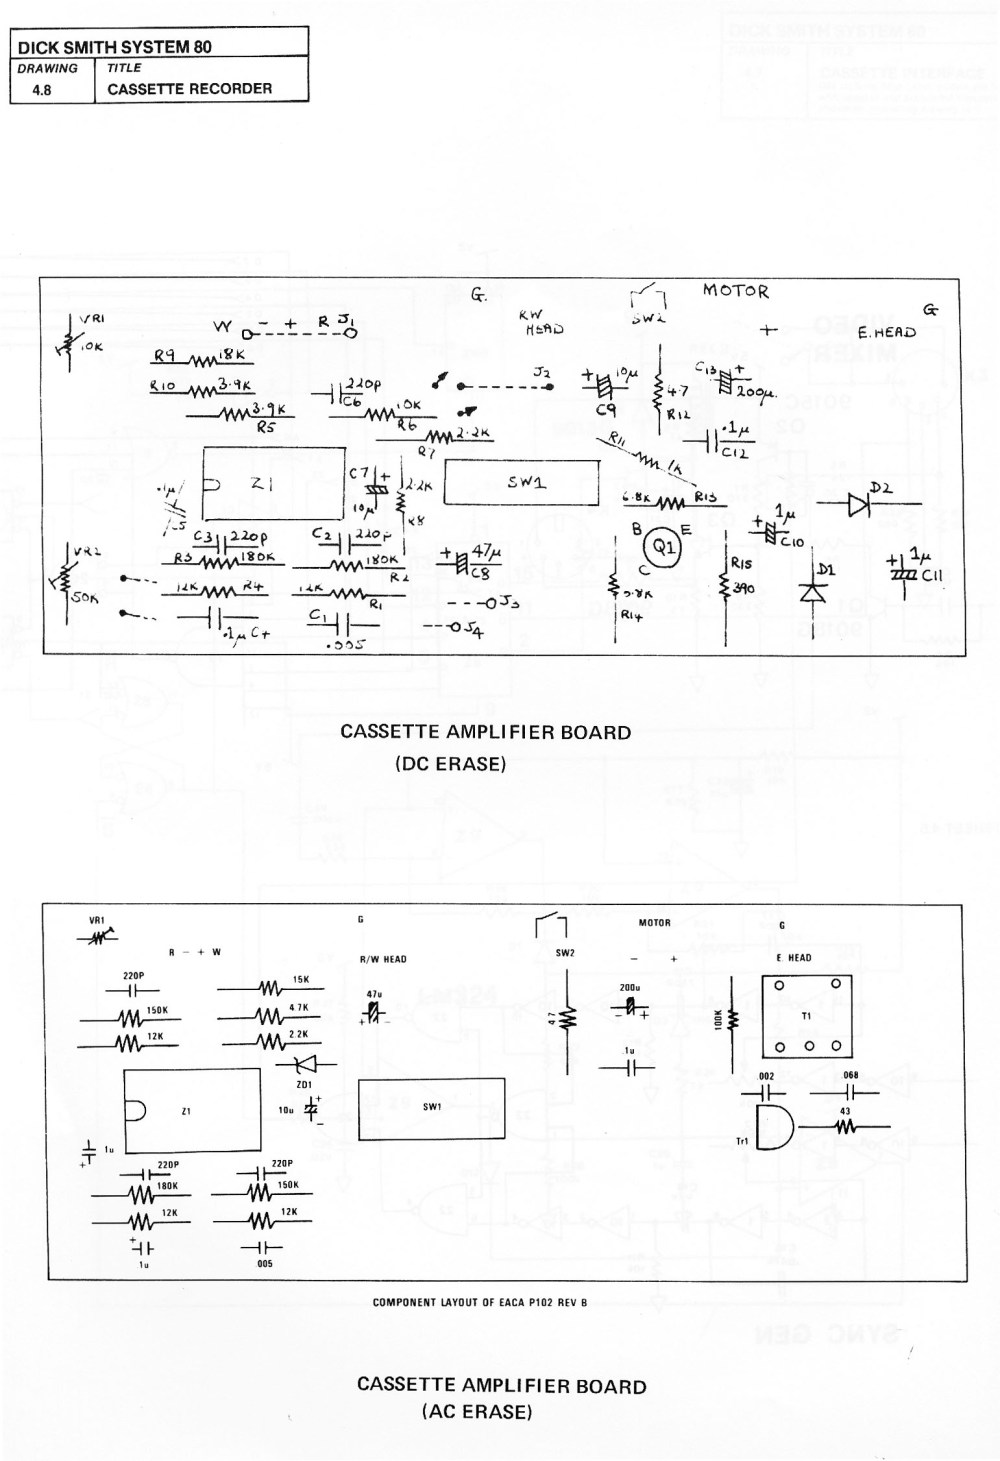 medium resolution of in the manual the circuit diagram was larger clearer and somehow seemed more authoritative